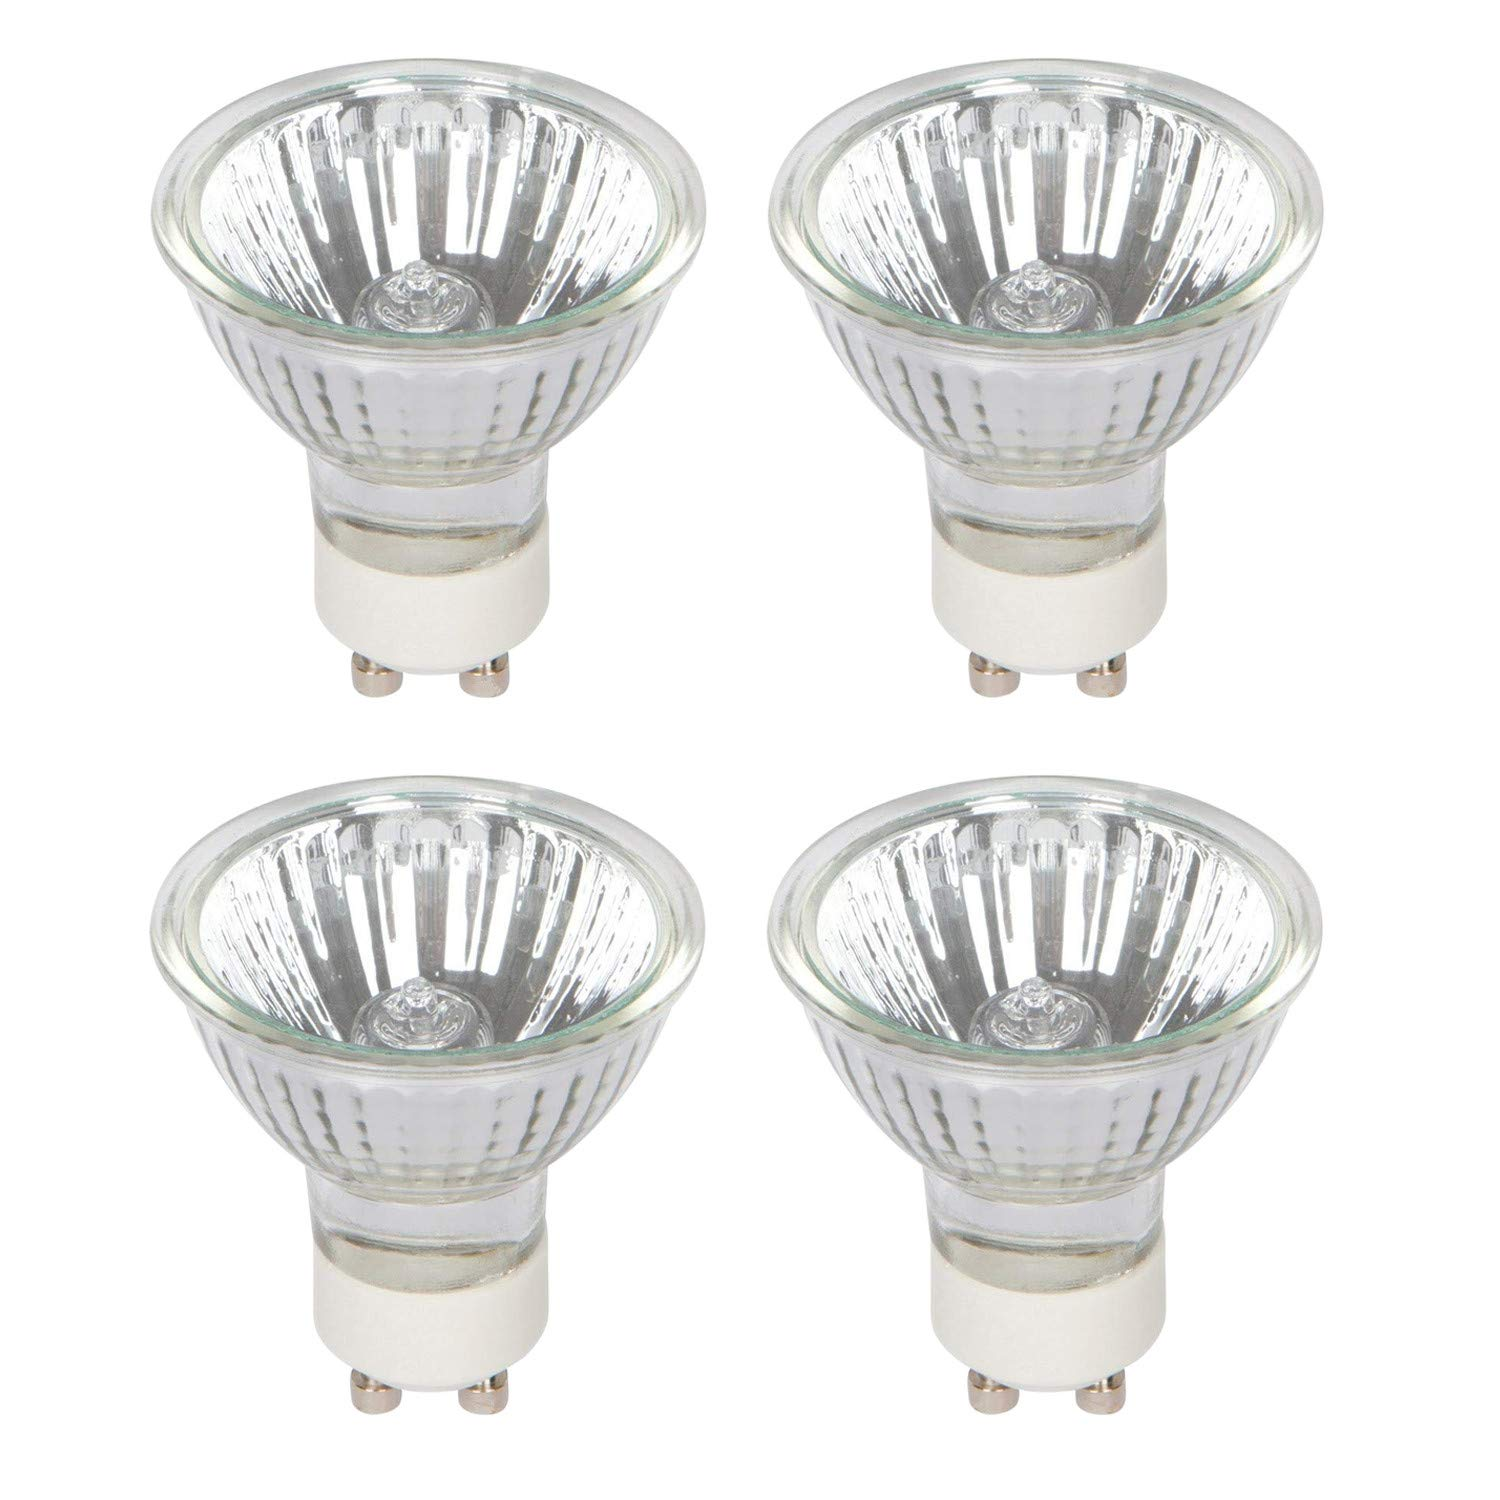 25 Watt Replacement Bulb for Candle Warmer,Pack of 4 by RunParts